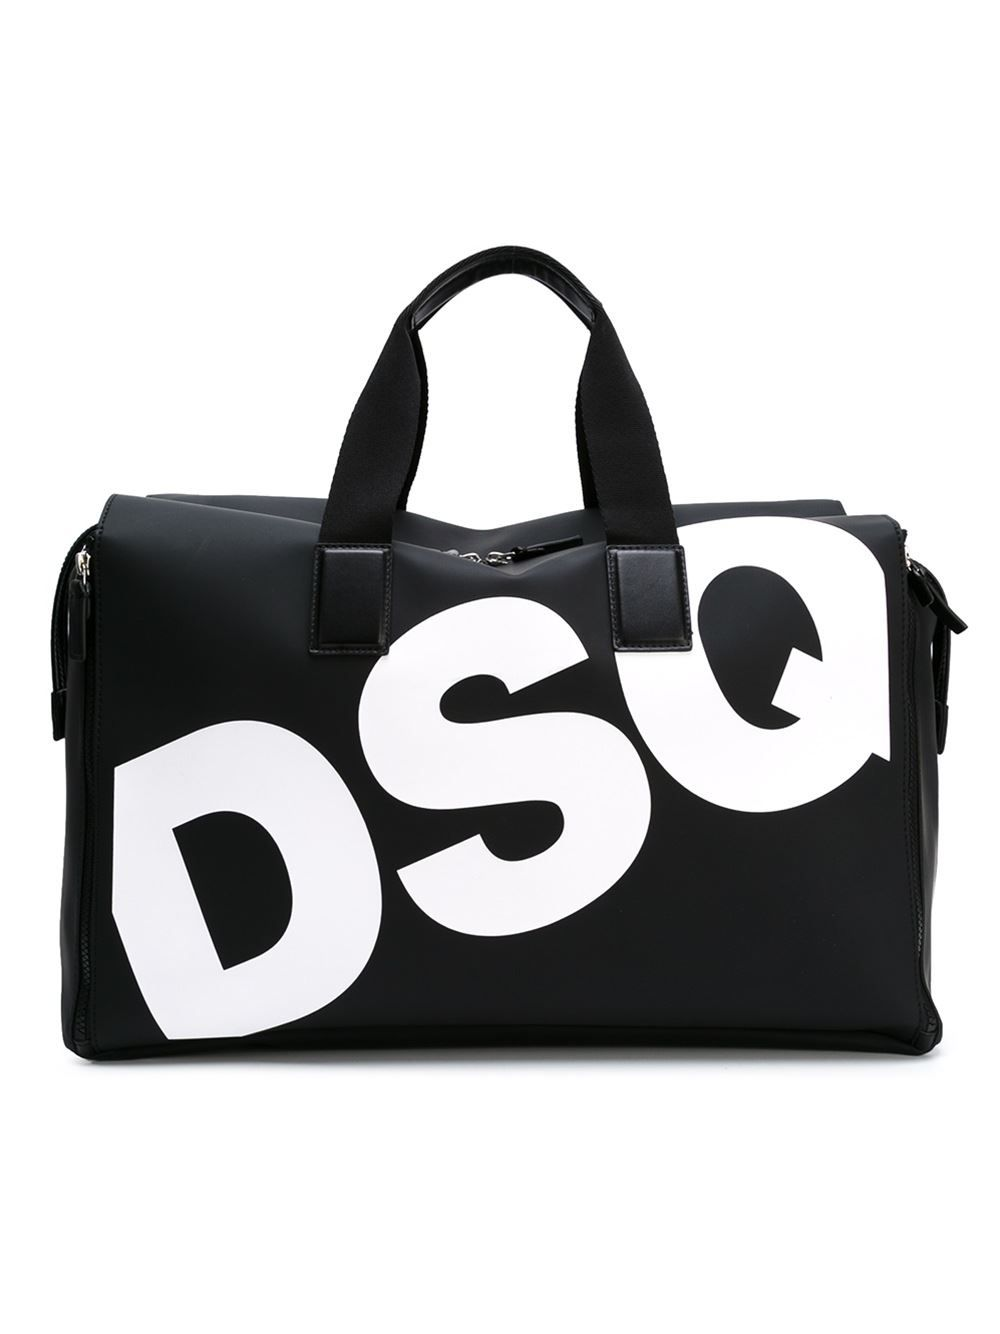 9cff6849e13721 Dsquared2 Logo Weekender Bag - Boutique Mantovani - Farfetch.com Clothes  2018, Designer Clothes